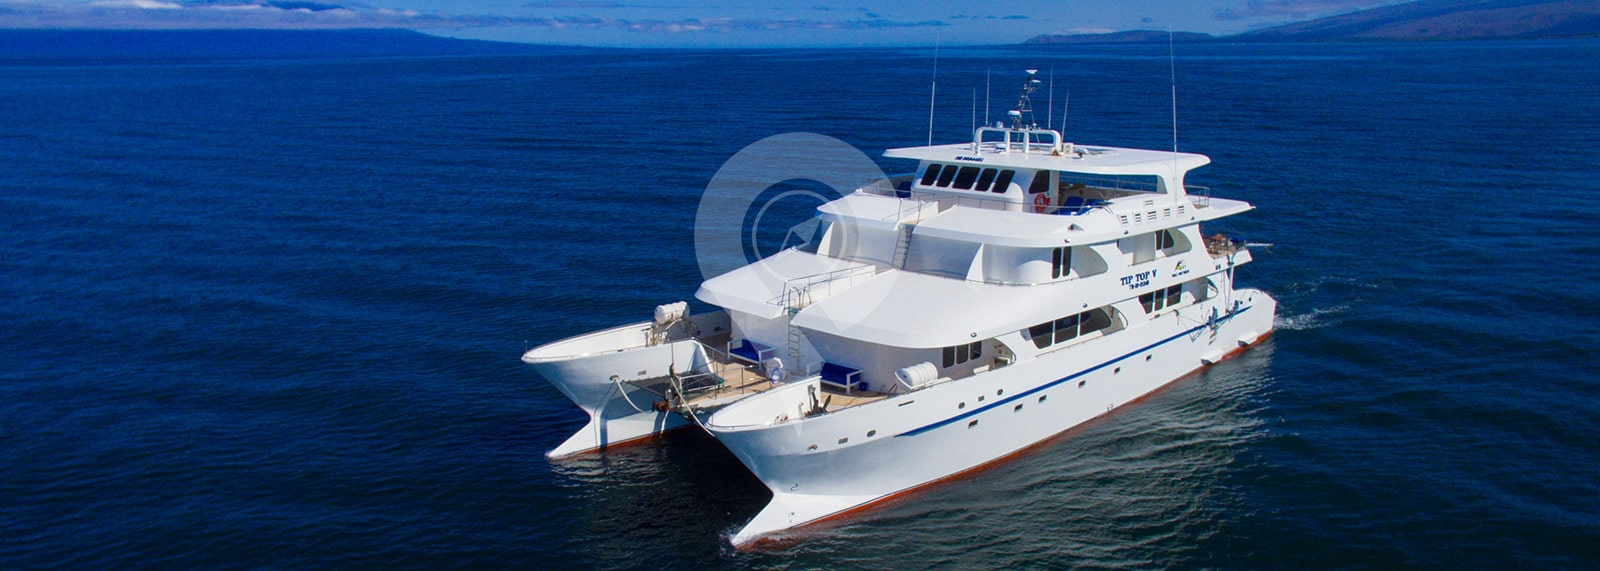 Catamaran Tip Top 5 Galapagos